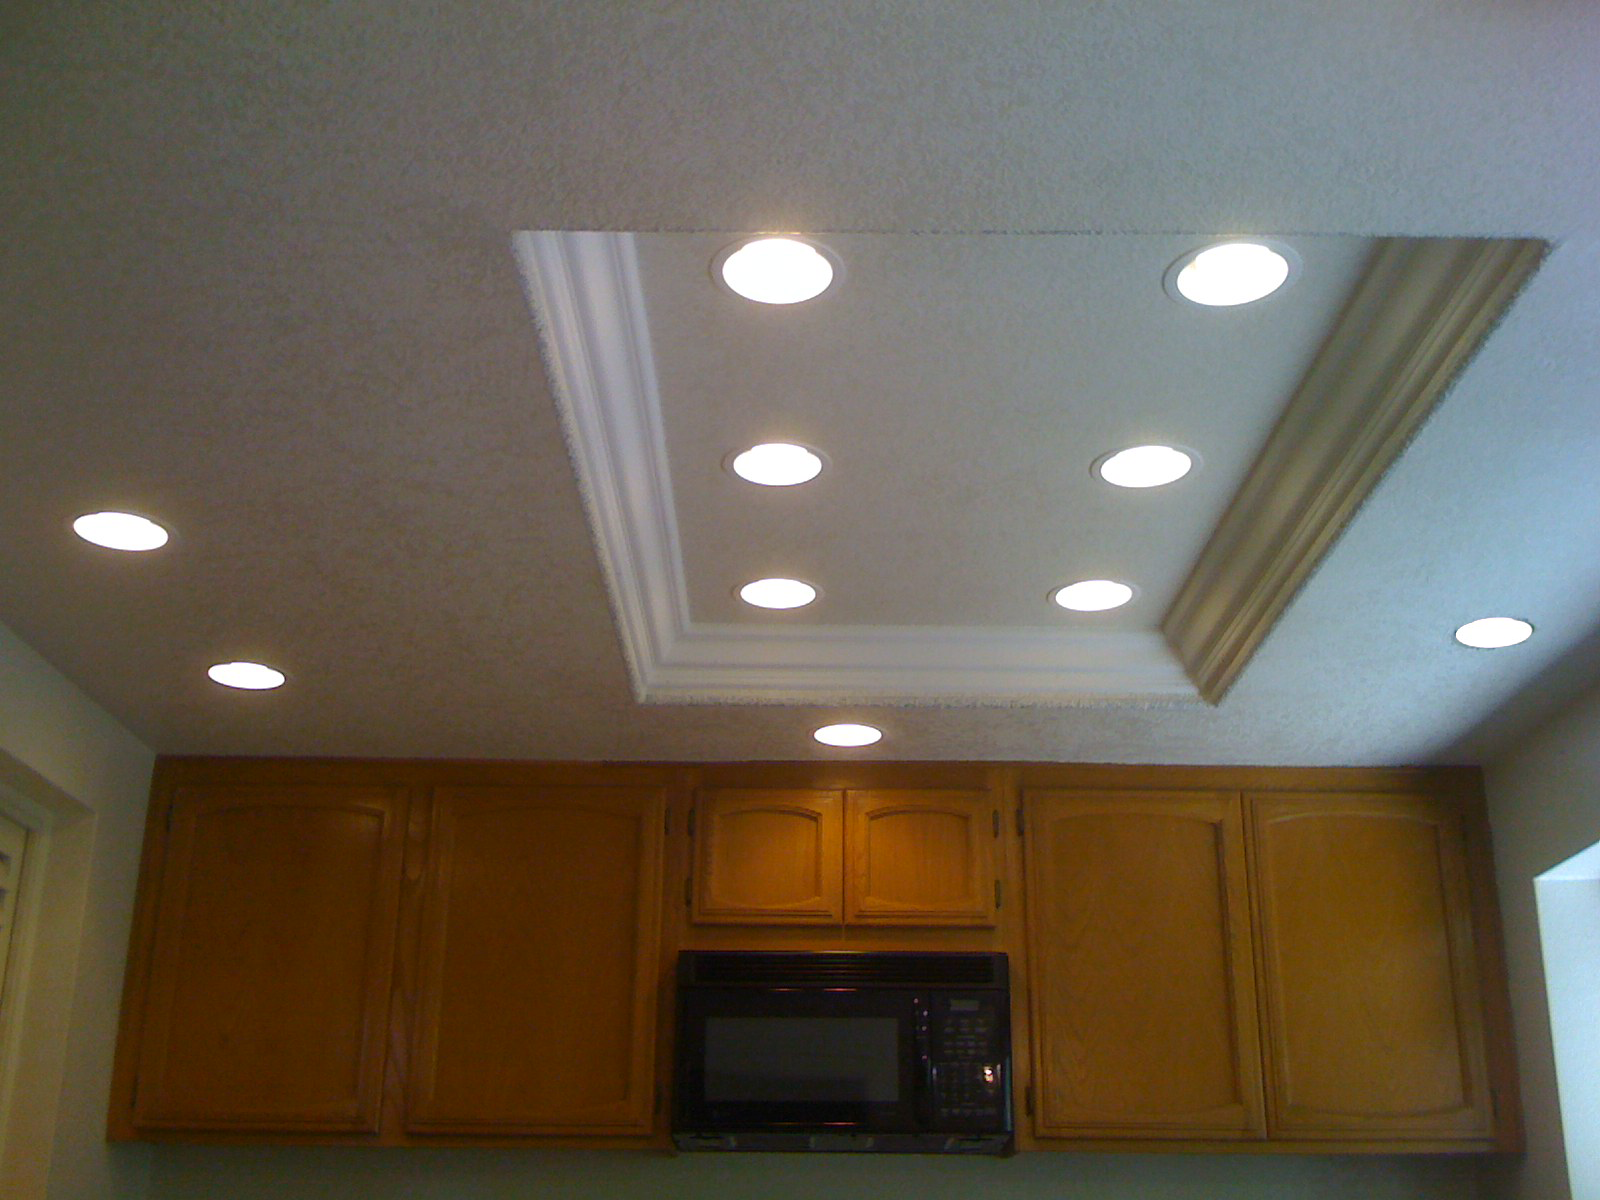 Replace Fluorescent Light Fixture In Kitchen Purple Cabinets Good Idea For Replacing With Recessed Lighting A Low Ceiling